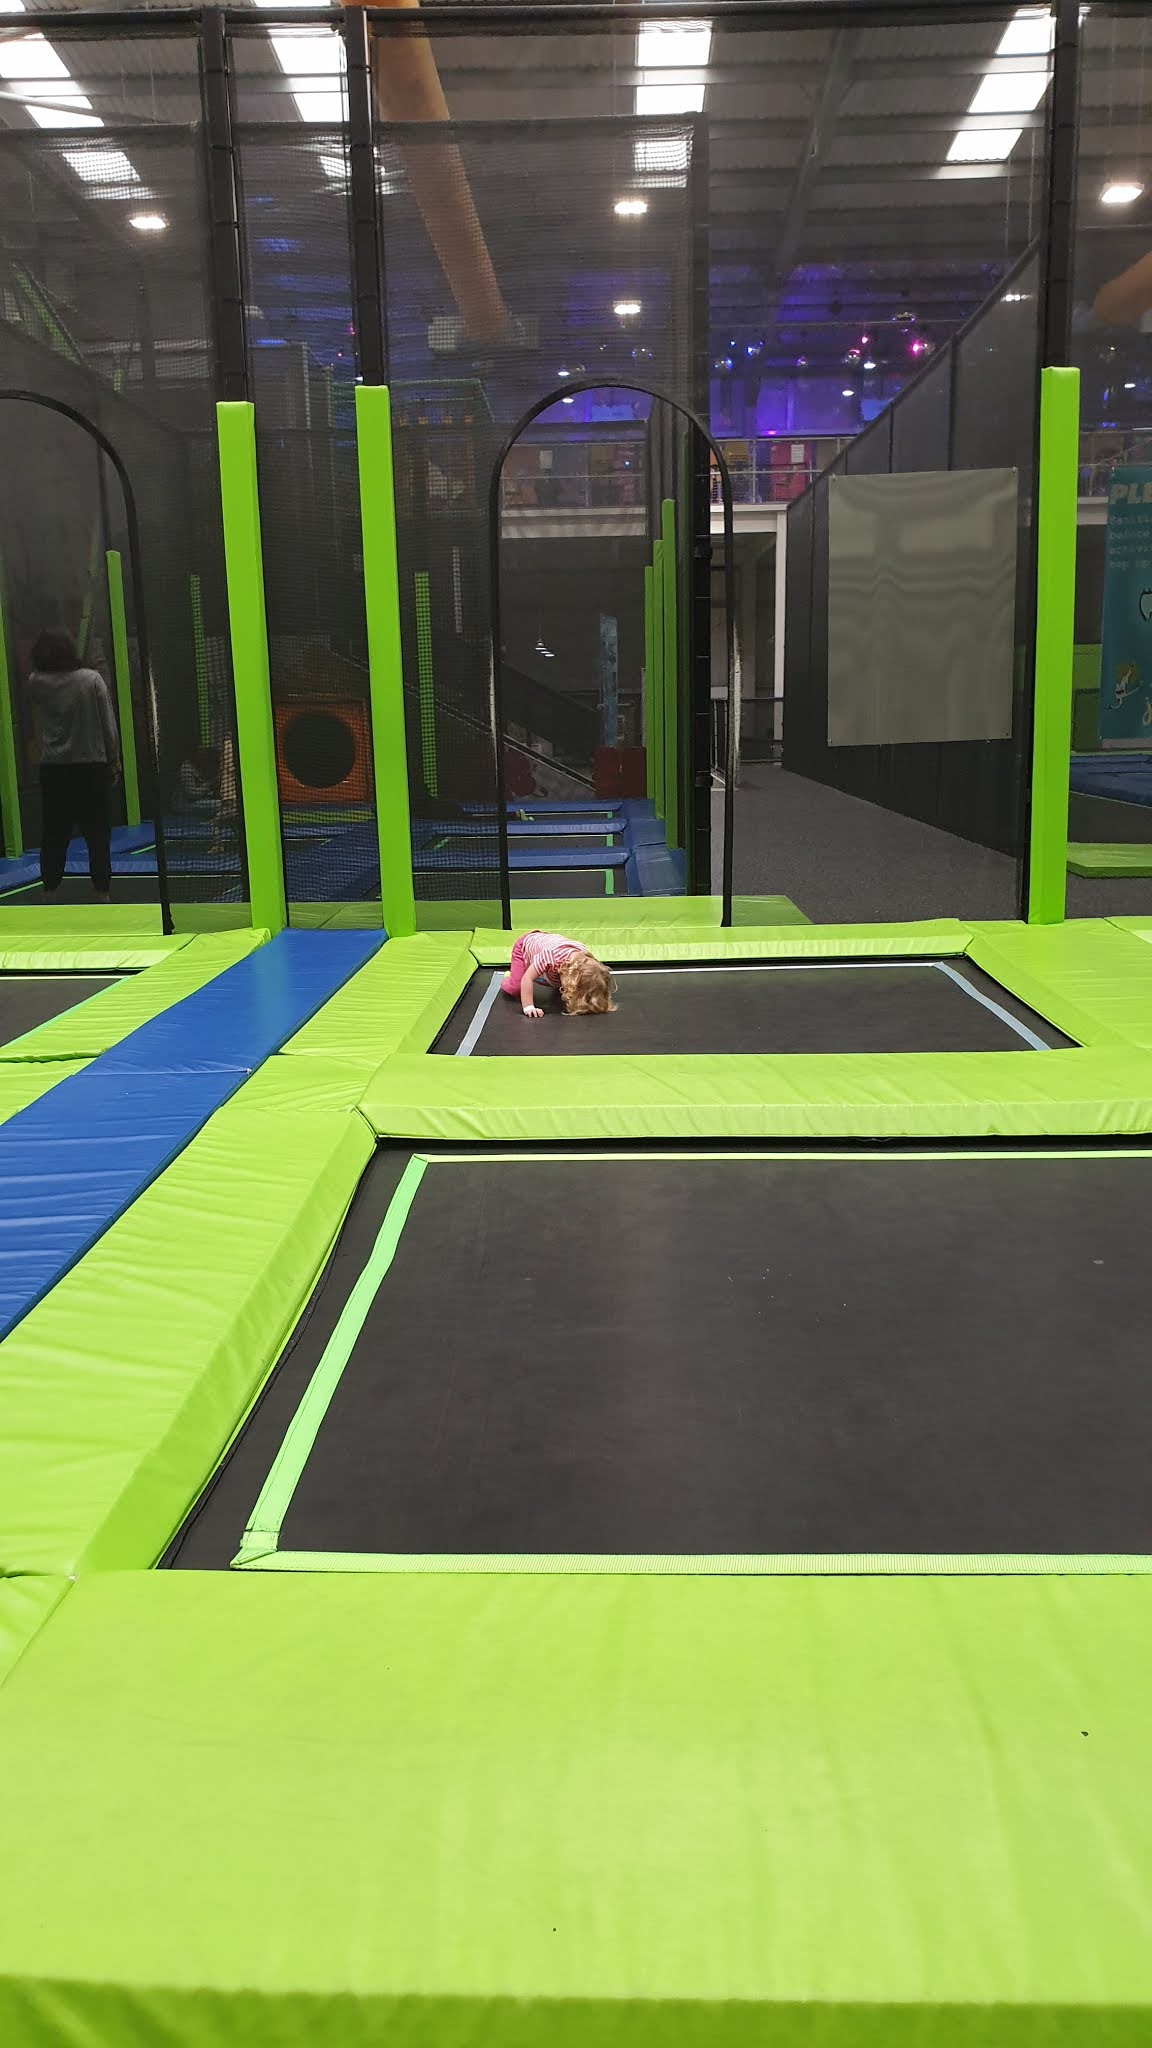 dodge ball area of trampoline park